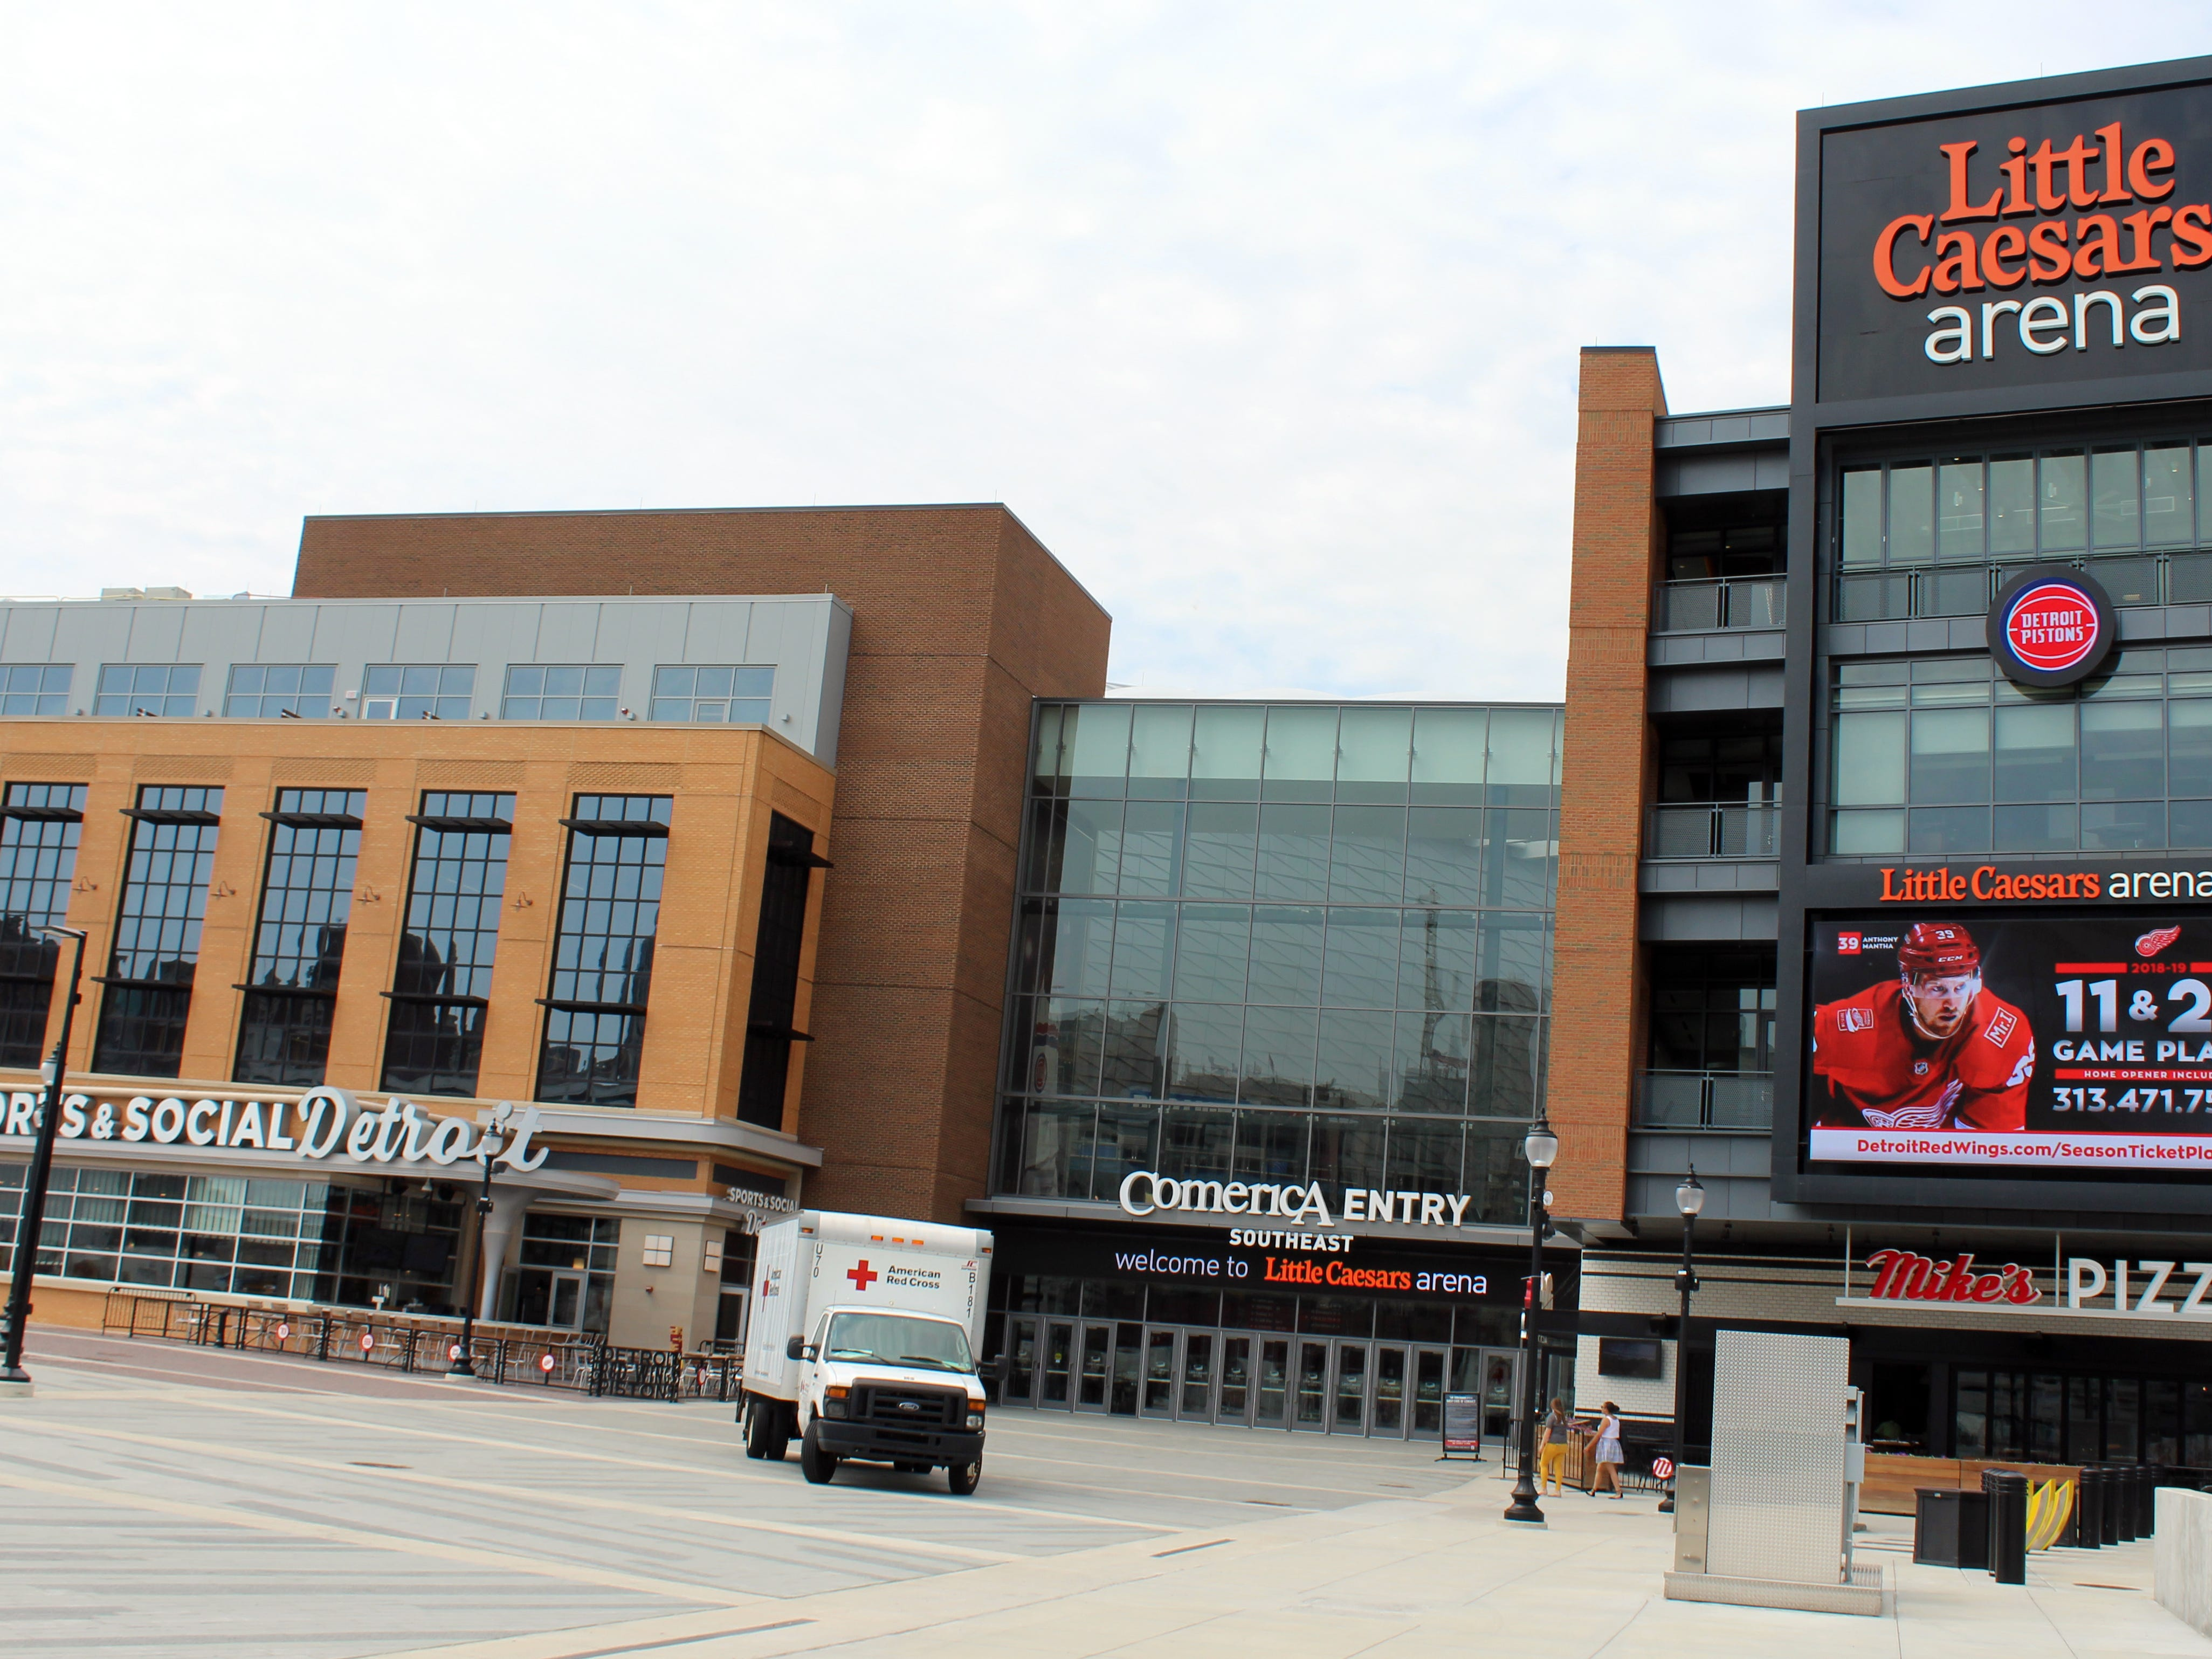 Open since September 2017, the Little Caesars Arena in Detroit is home to the NBA Pistons and NHL Red Wings.